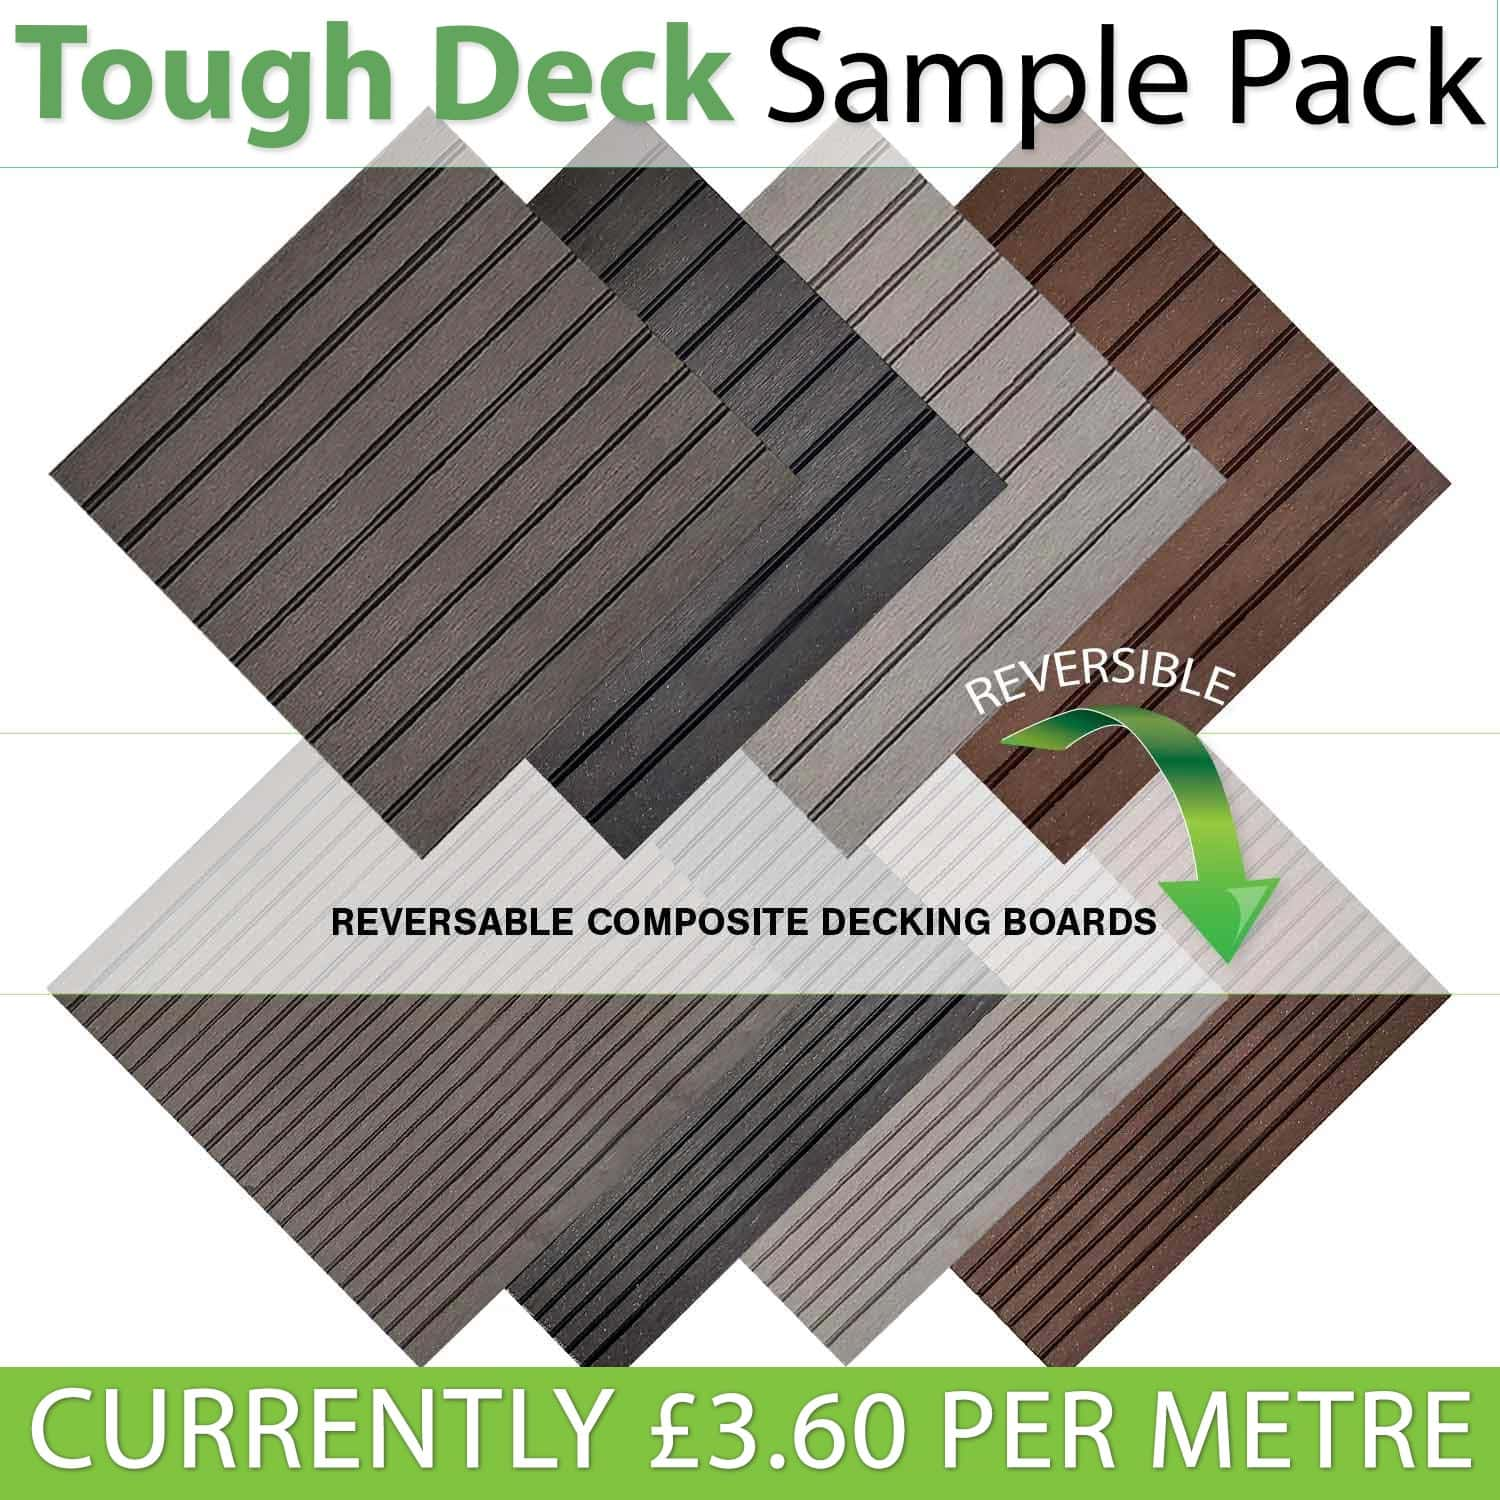 Composite Decking Samples Pack Black Grey And Teak